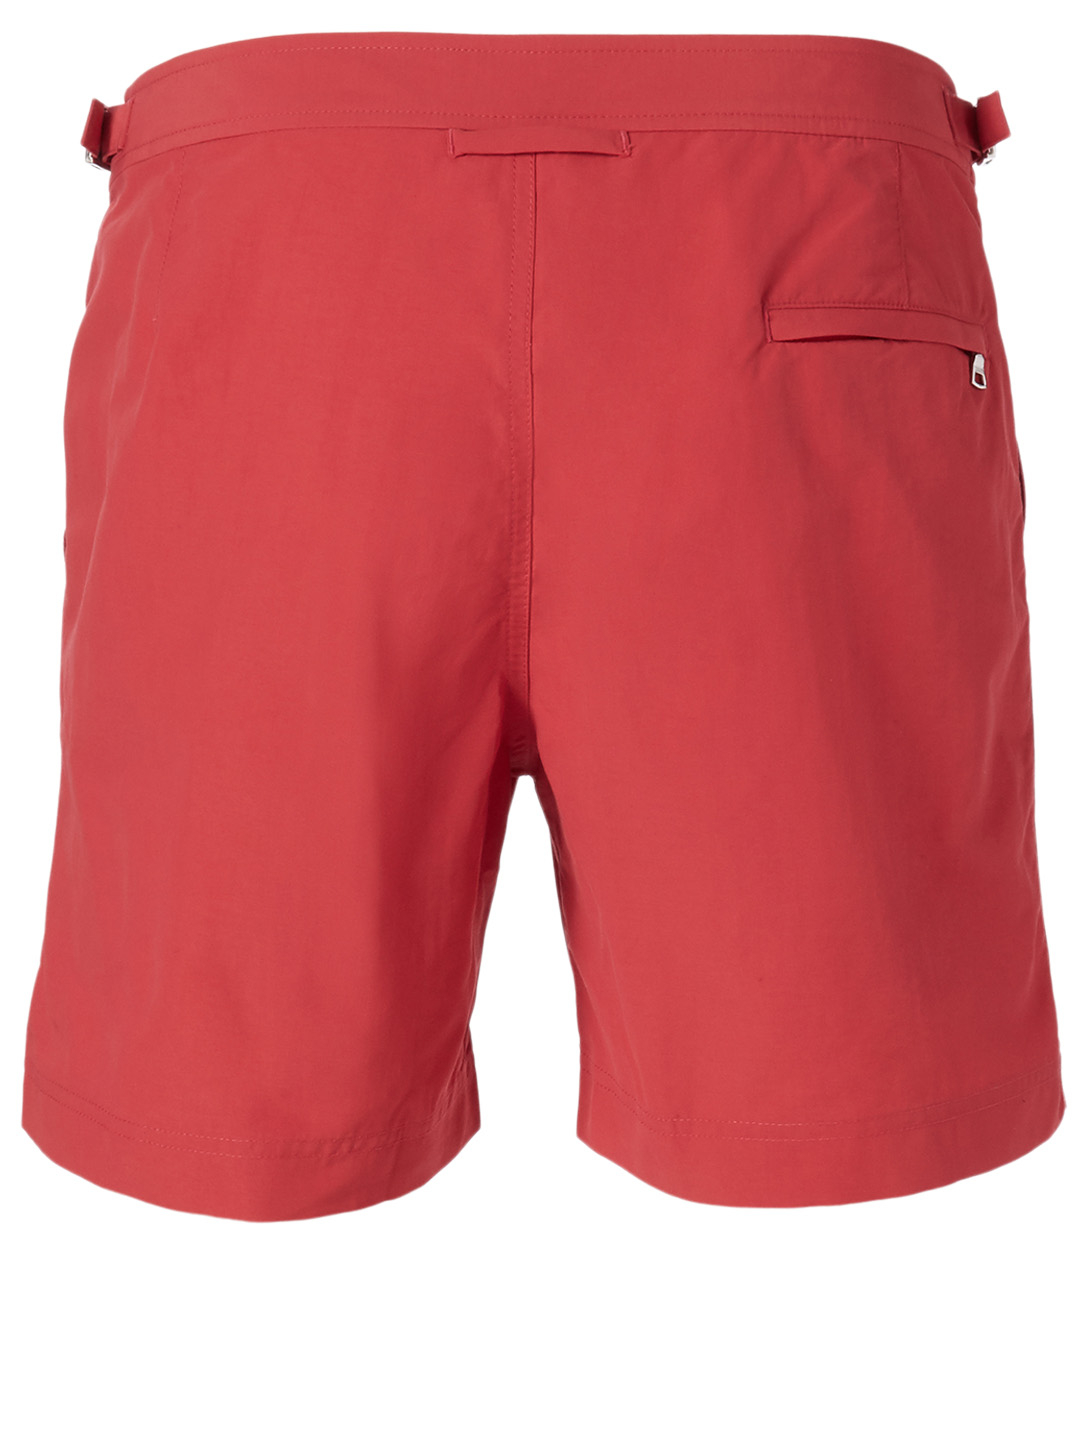 ORLEBAR BROWN Bulldog Swim Shorts Men's Pink